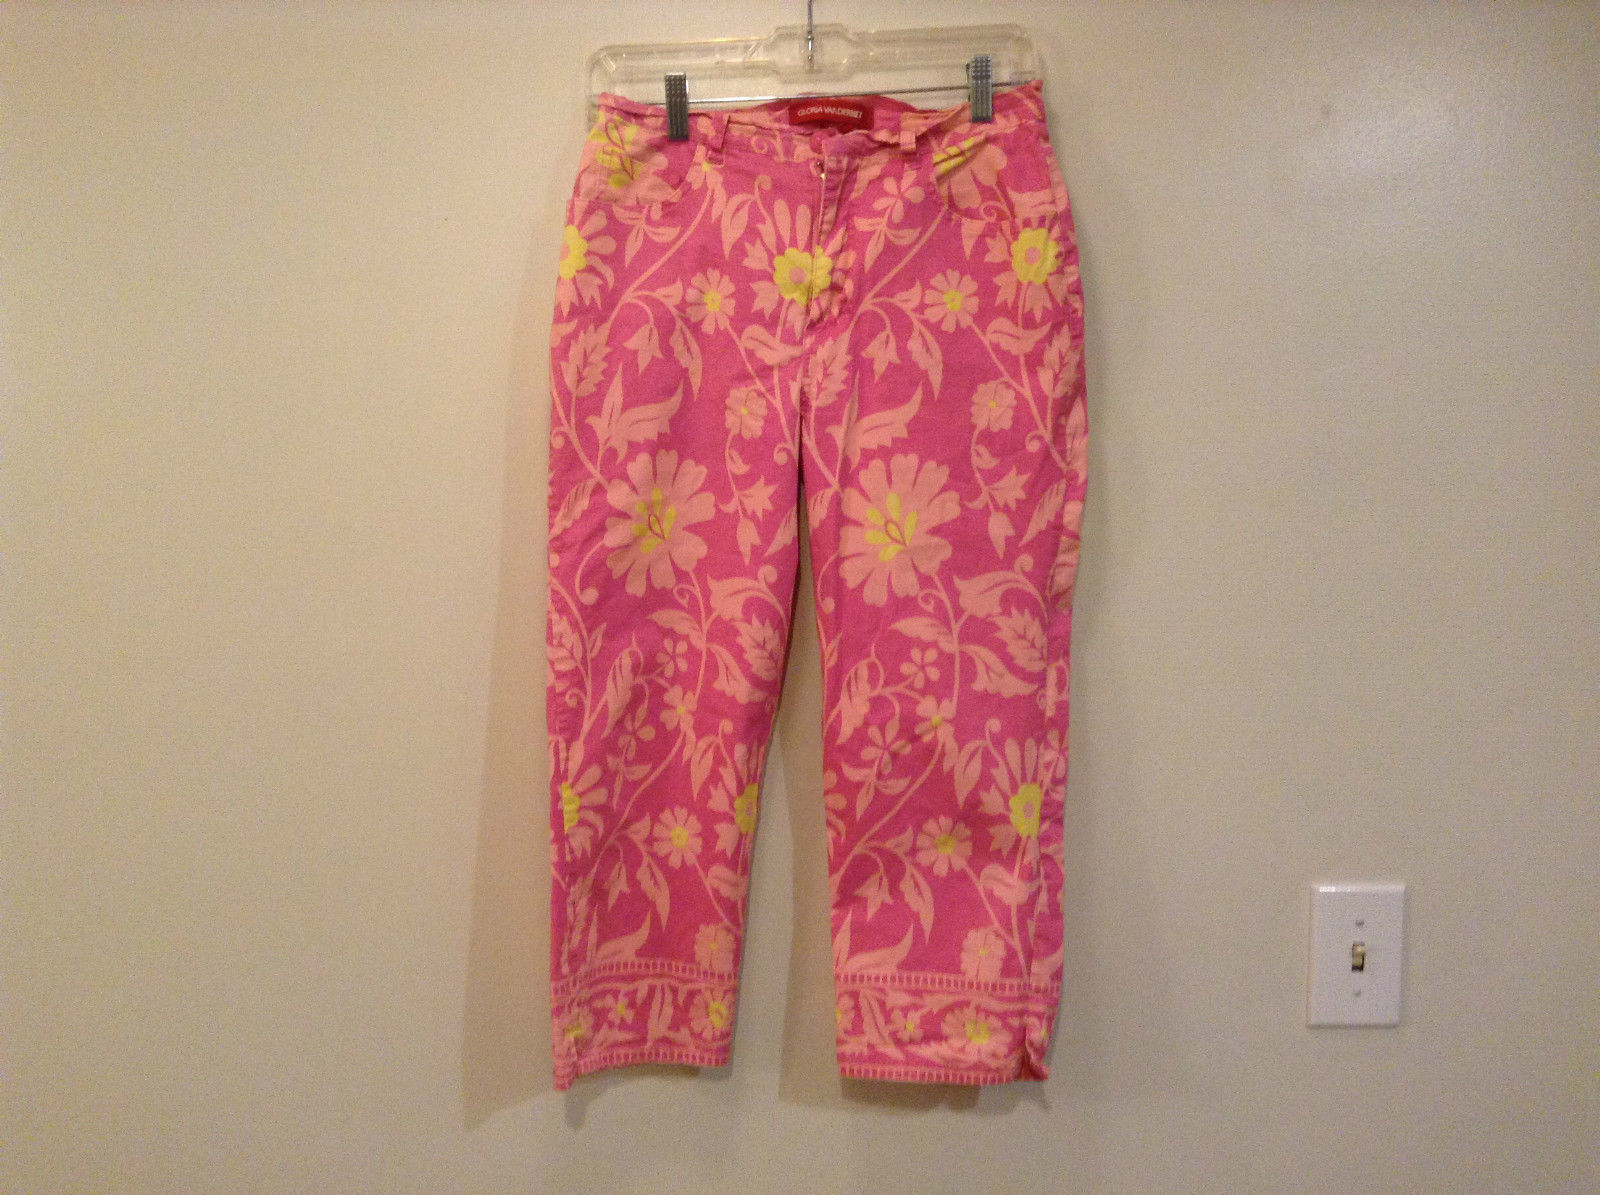 Pink Floral Patterned Gloria Vanderbilt Capri Pants Size 8 Button Zipper Closure